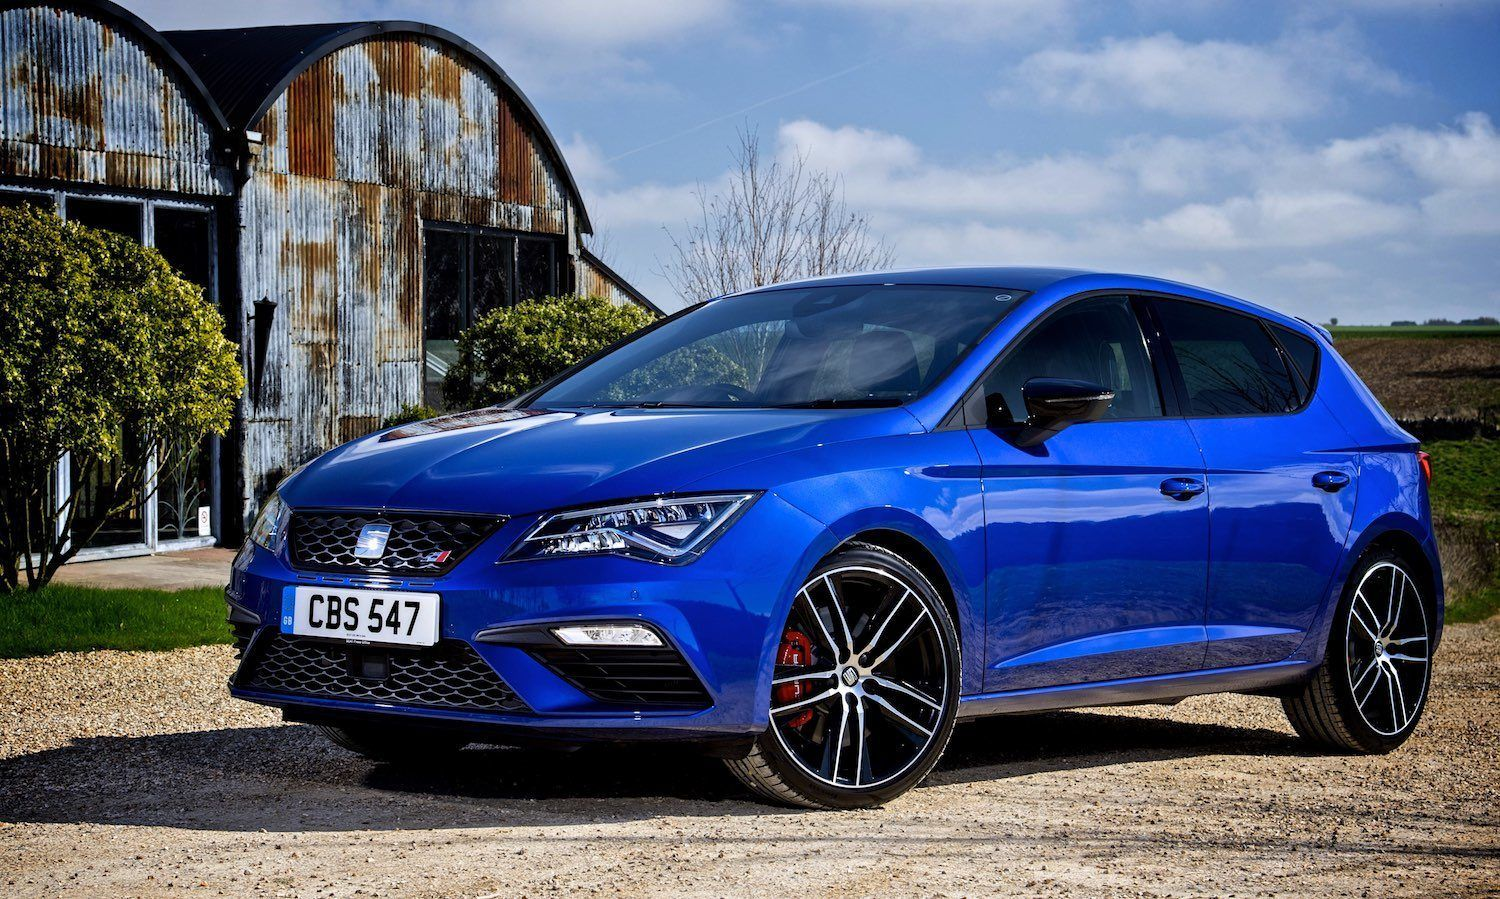 2017 seat leon cupra 300 reviewed it s a blast car. Black Bedroom Furniture Sets. Home Design Ideas